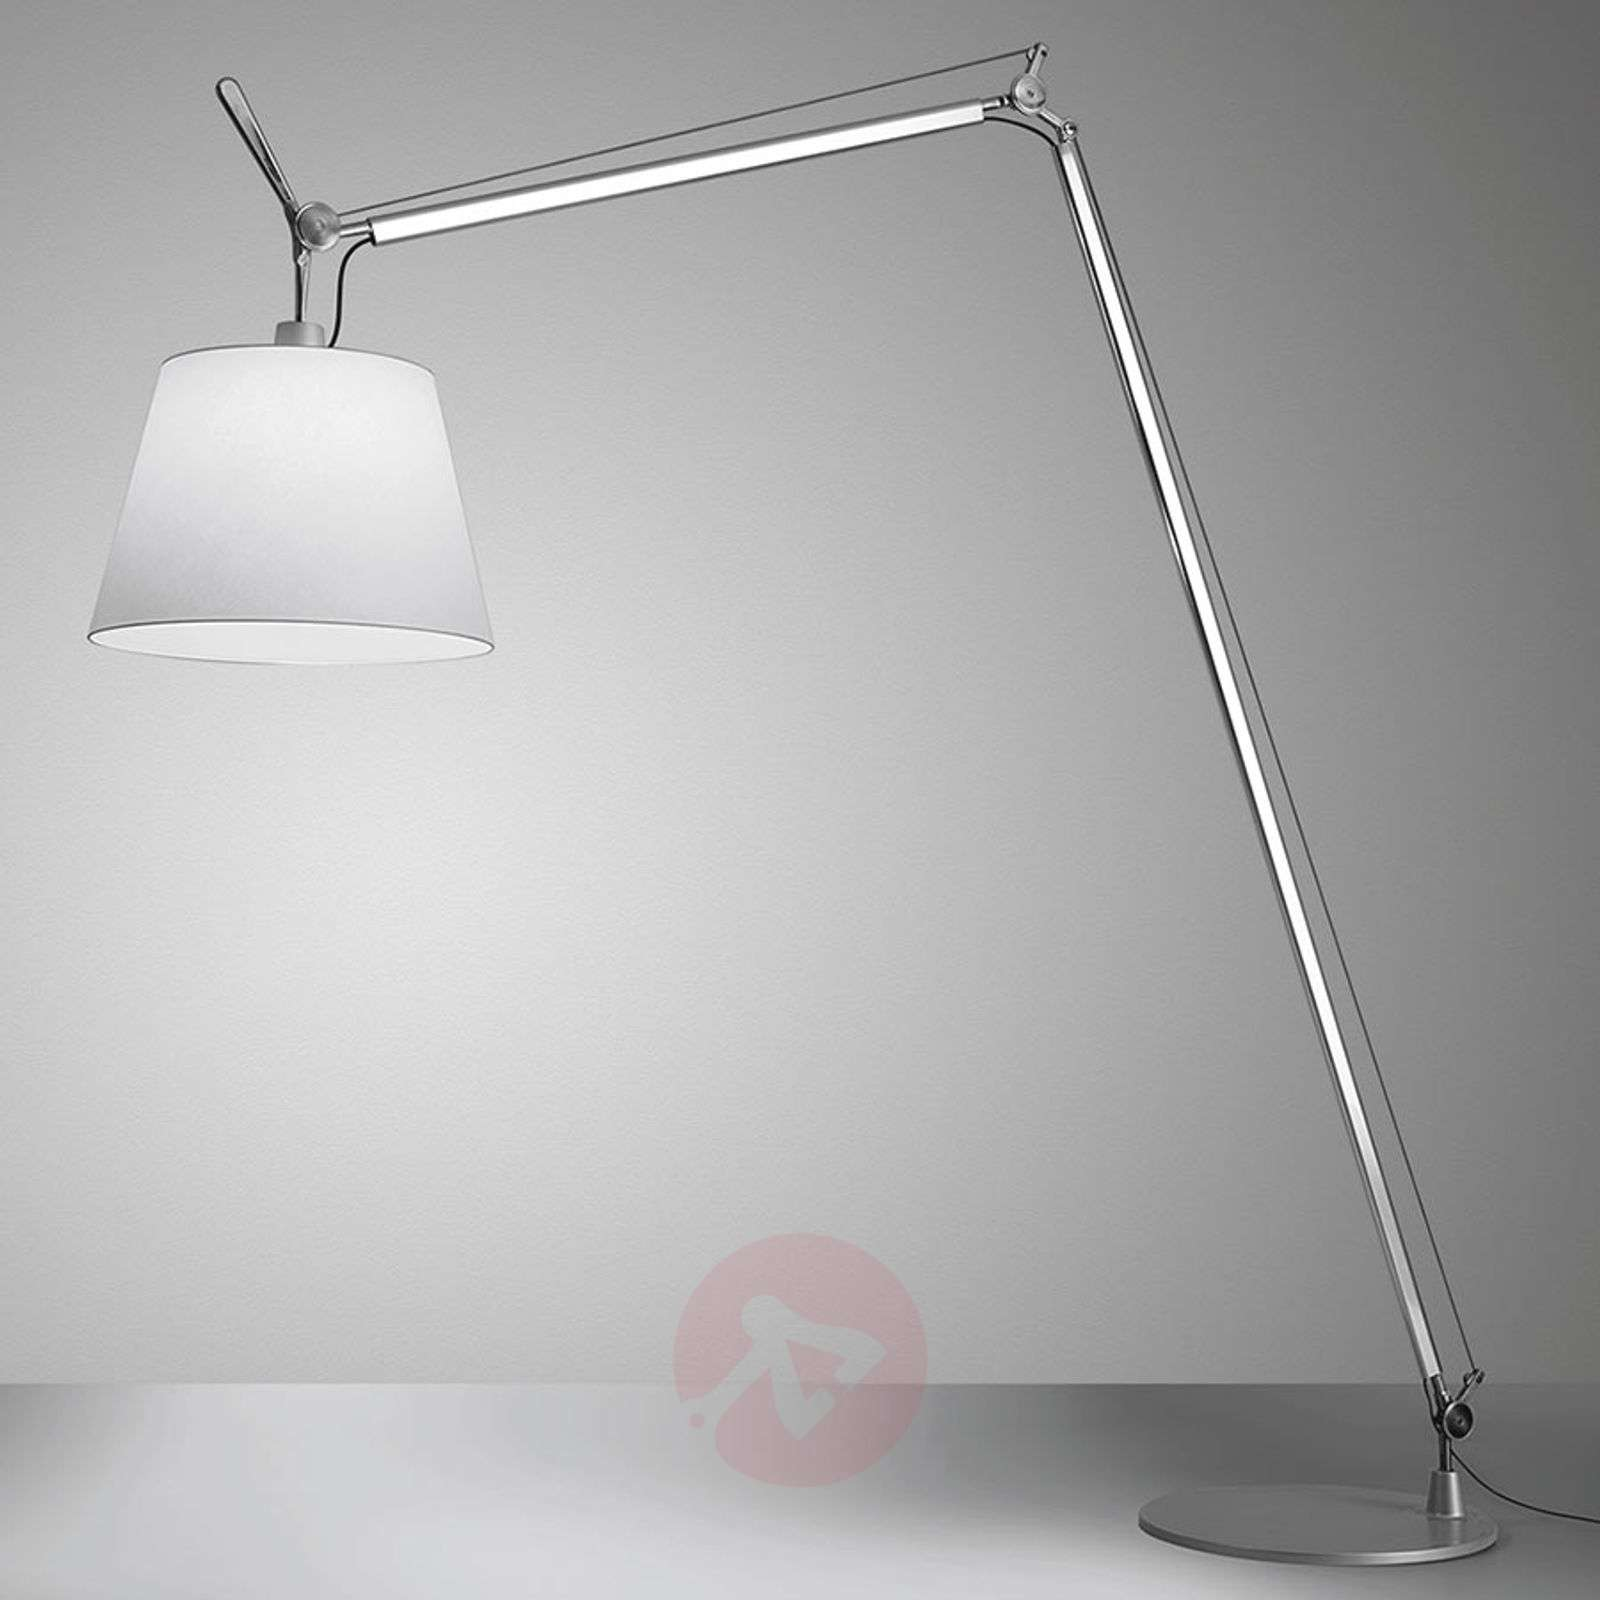 Artemide Tolomeo Maxi LED floor lamp-1060115-01